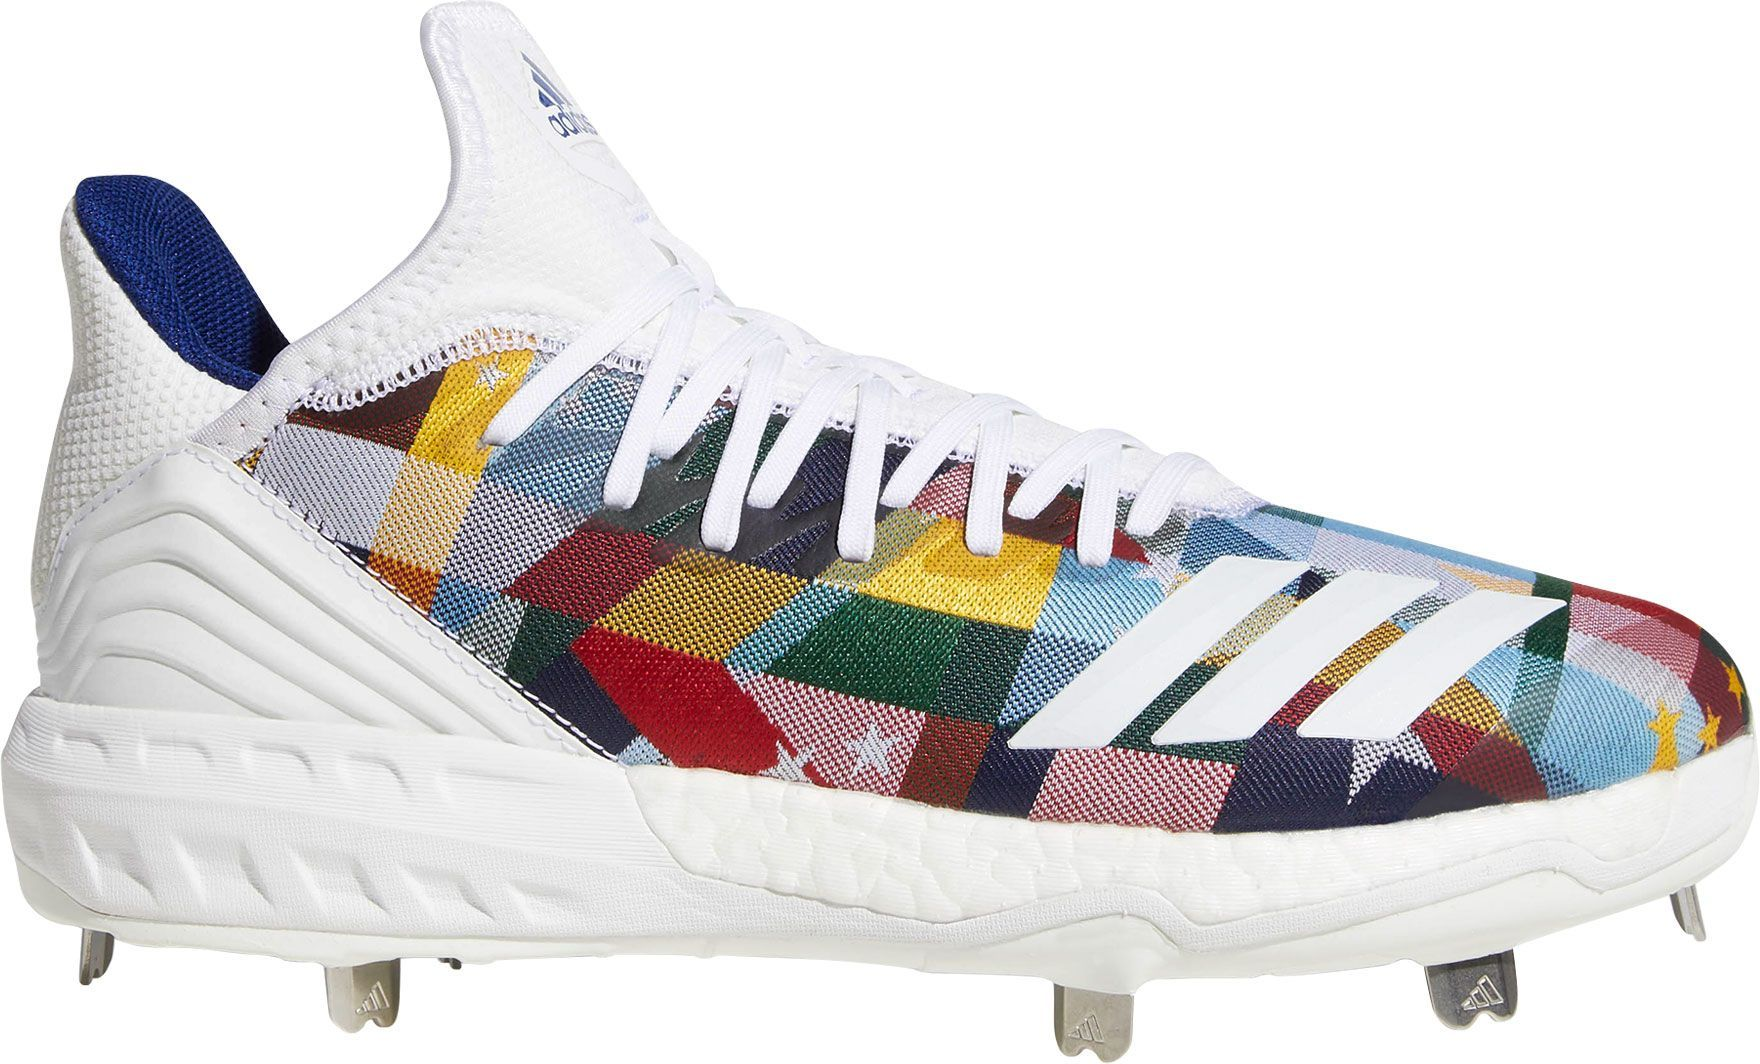 Icon Baseball Adidas CleatsProducts Men's Nations Metal 4 eD2IWHY9E